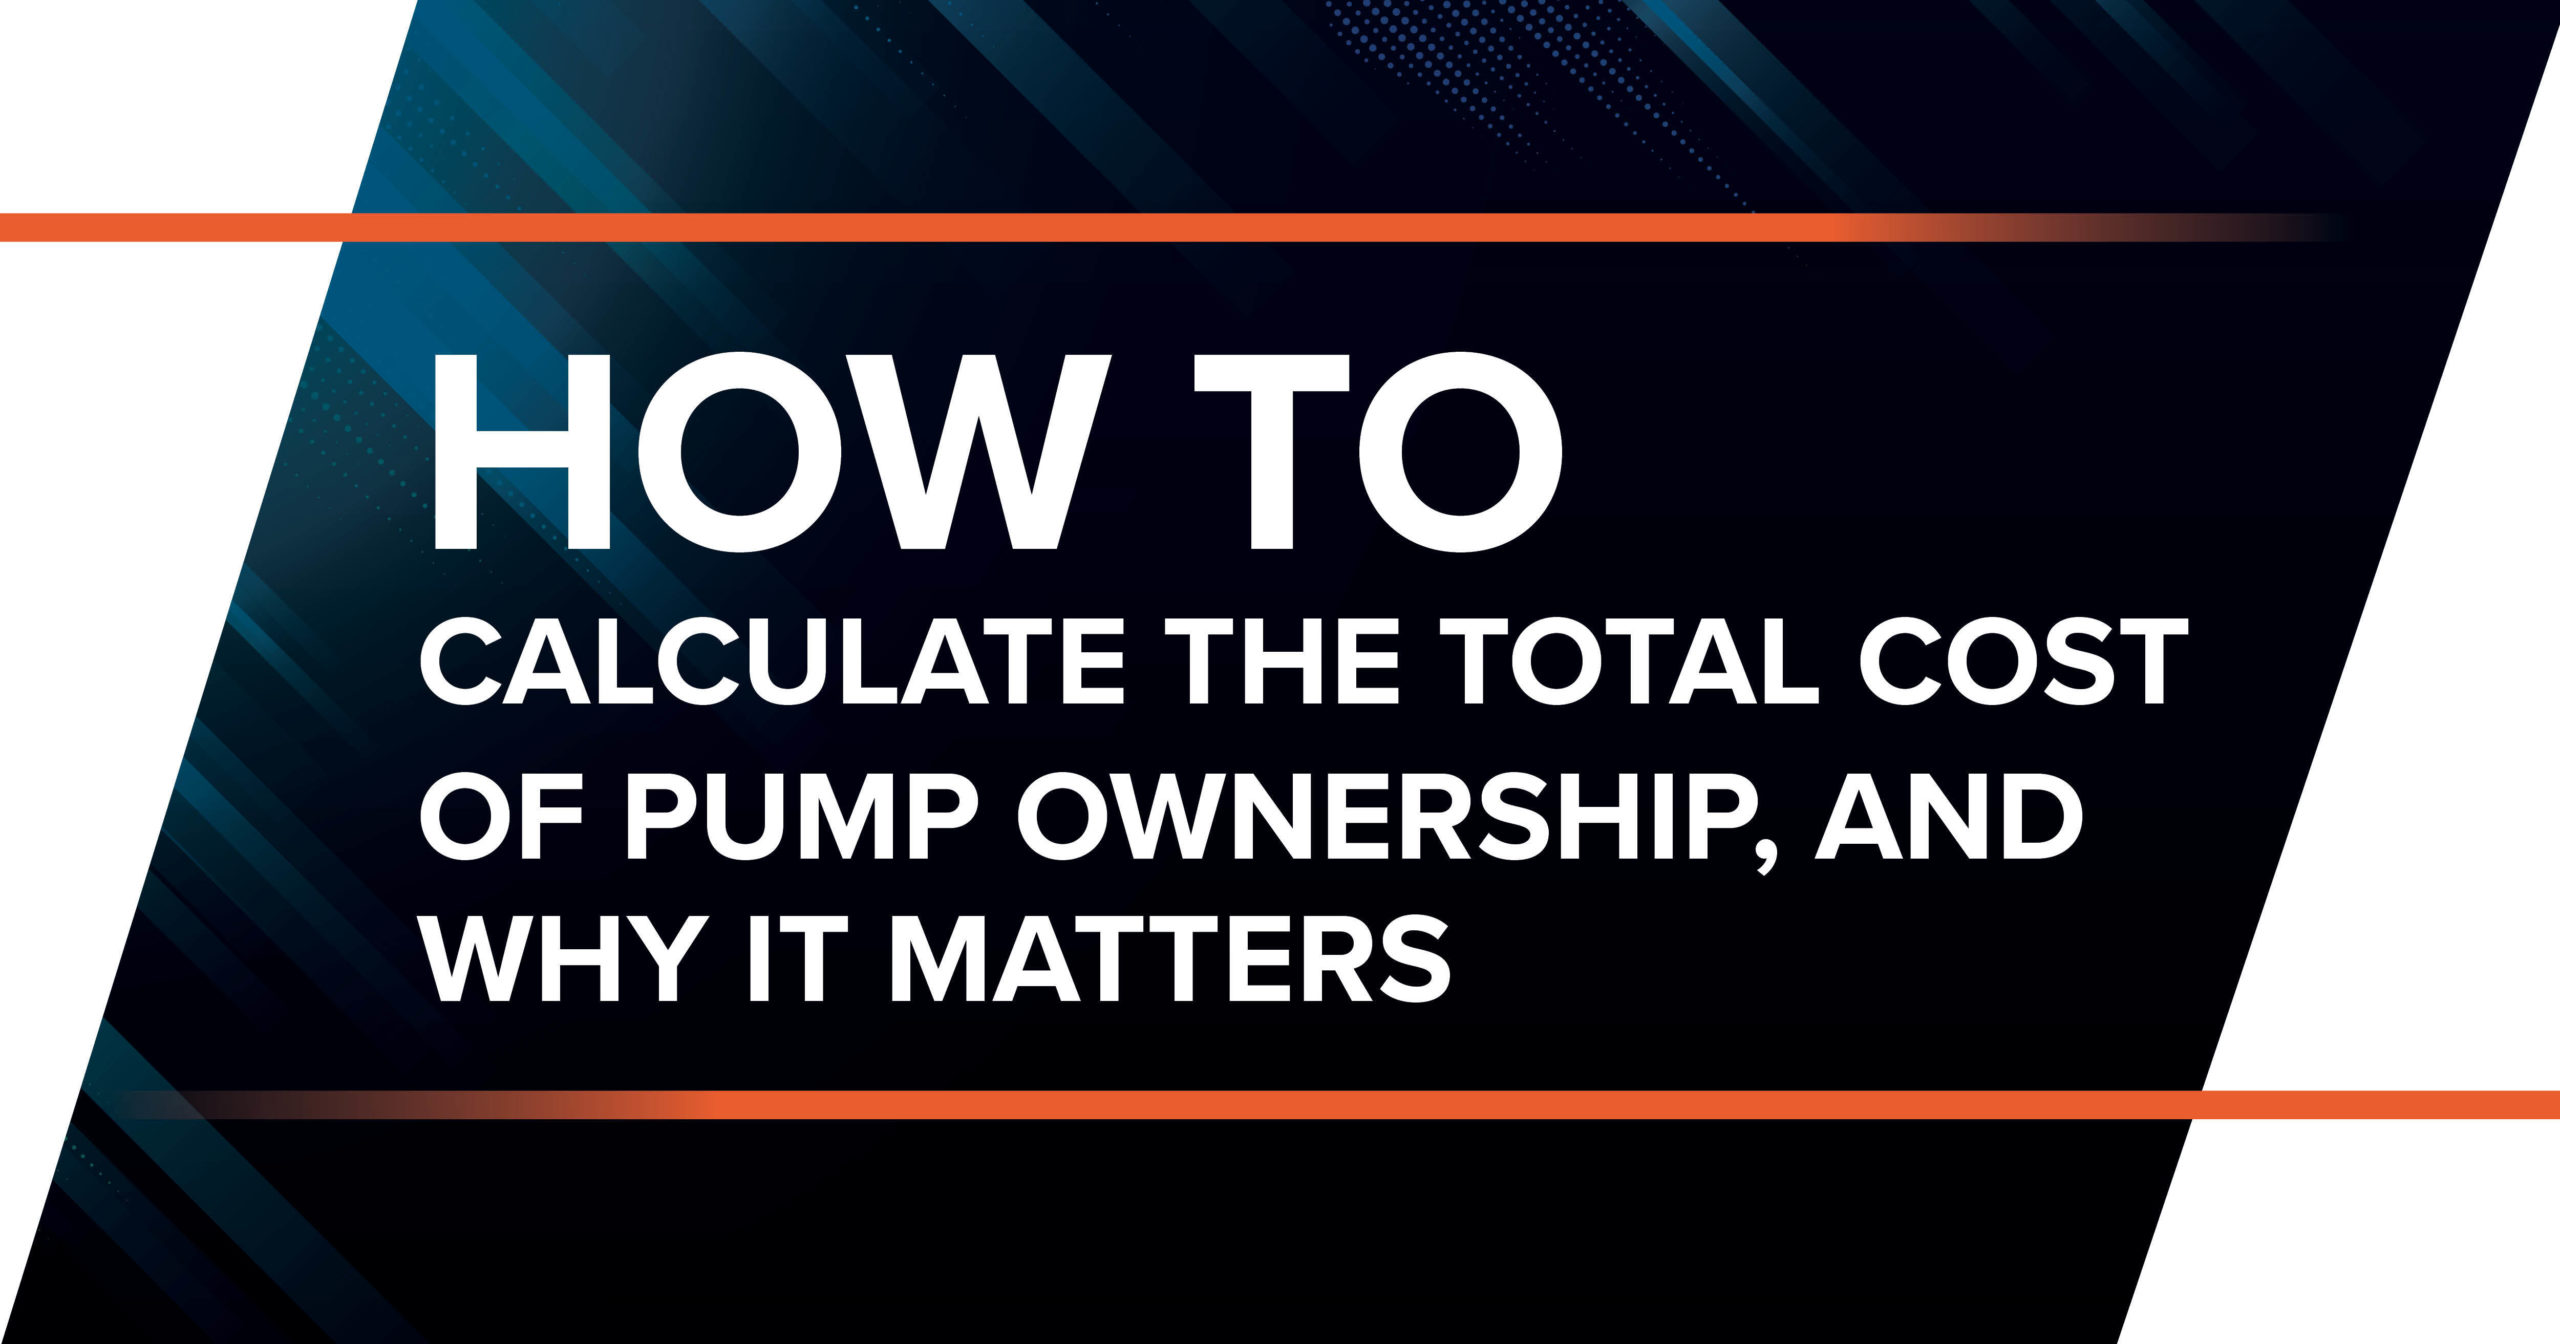 How to Calculate the Total Cost of Pump Ownership, and Why It Matters